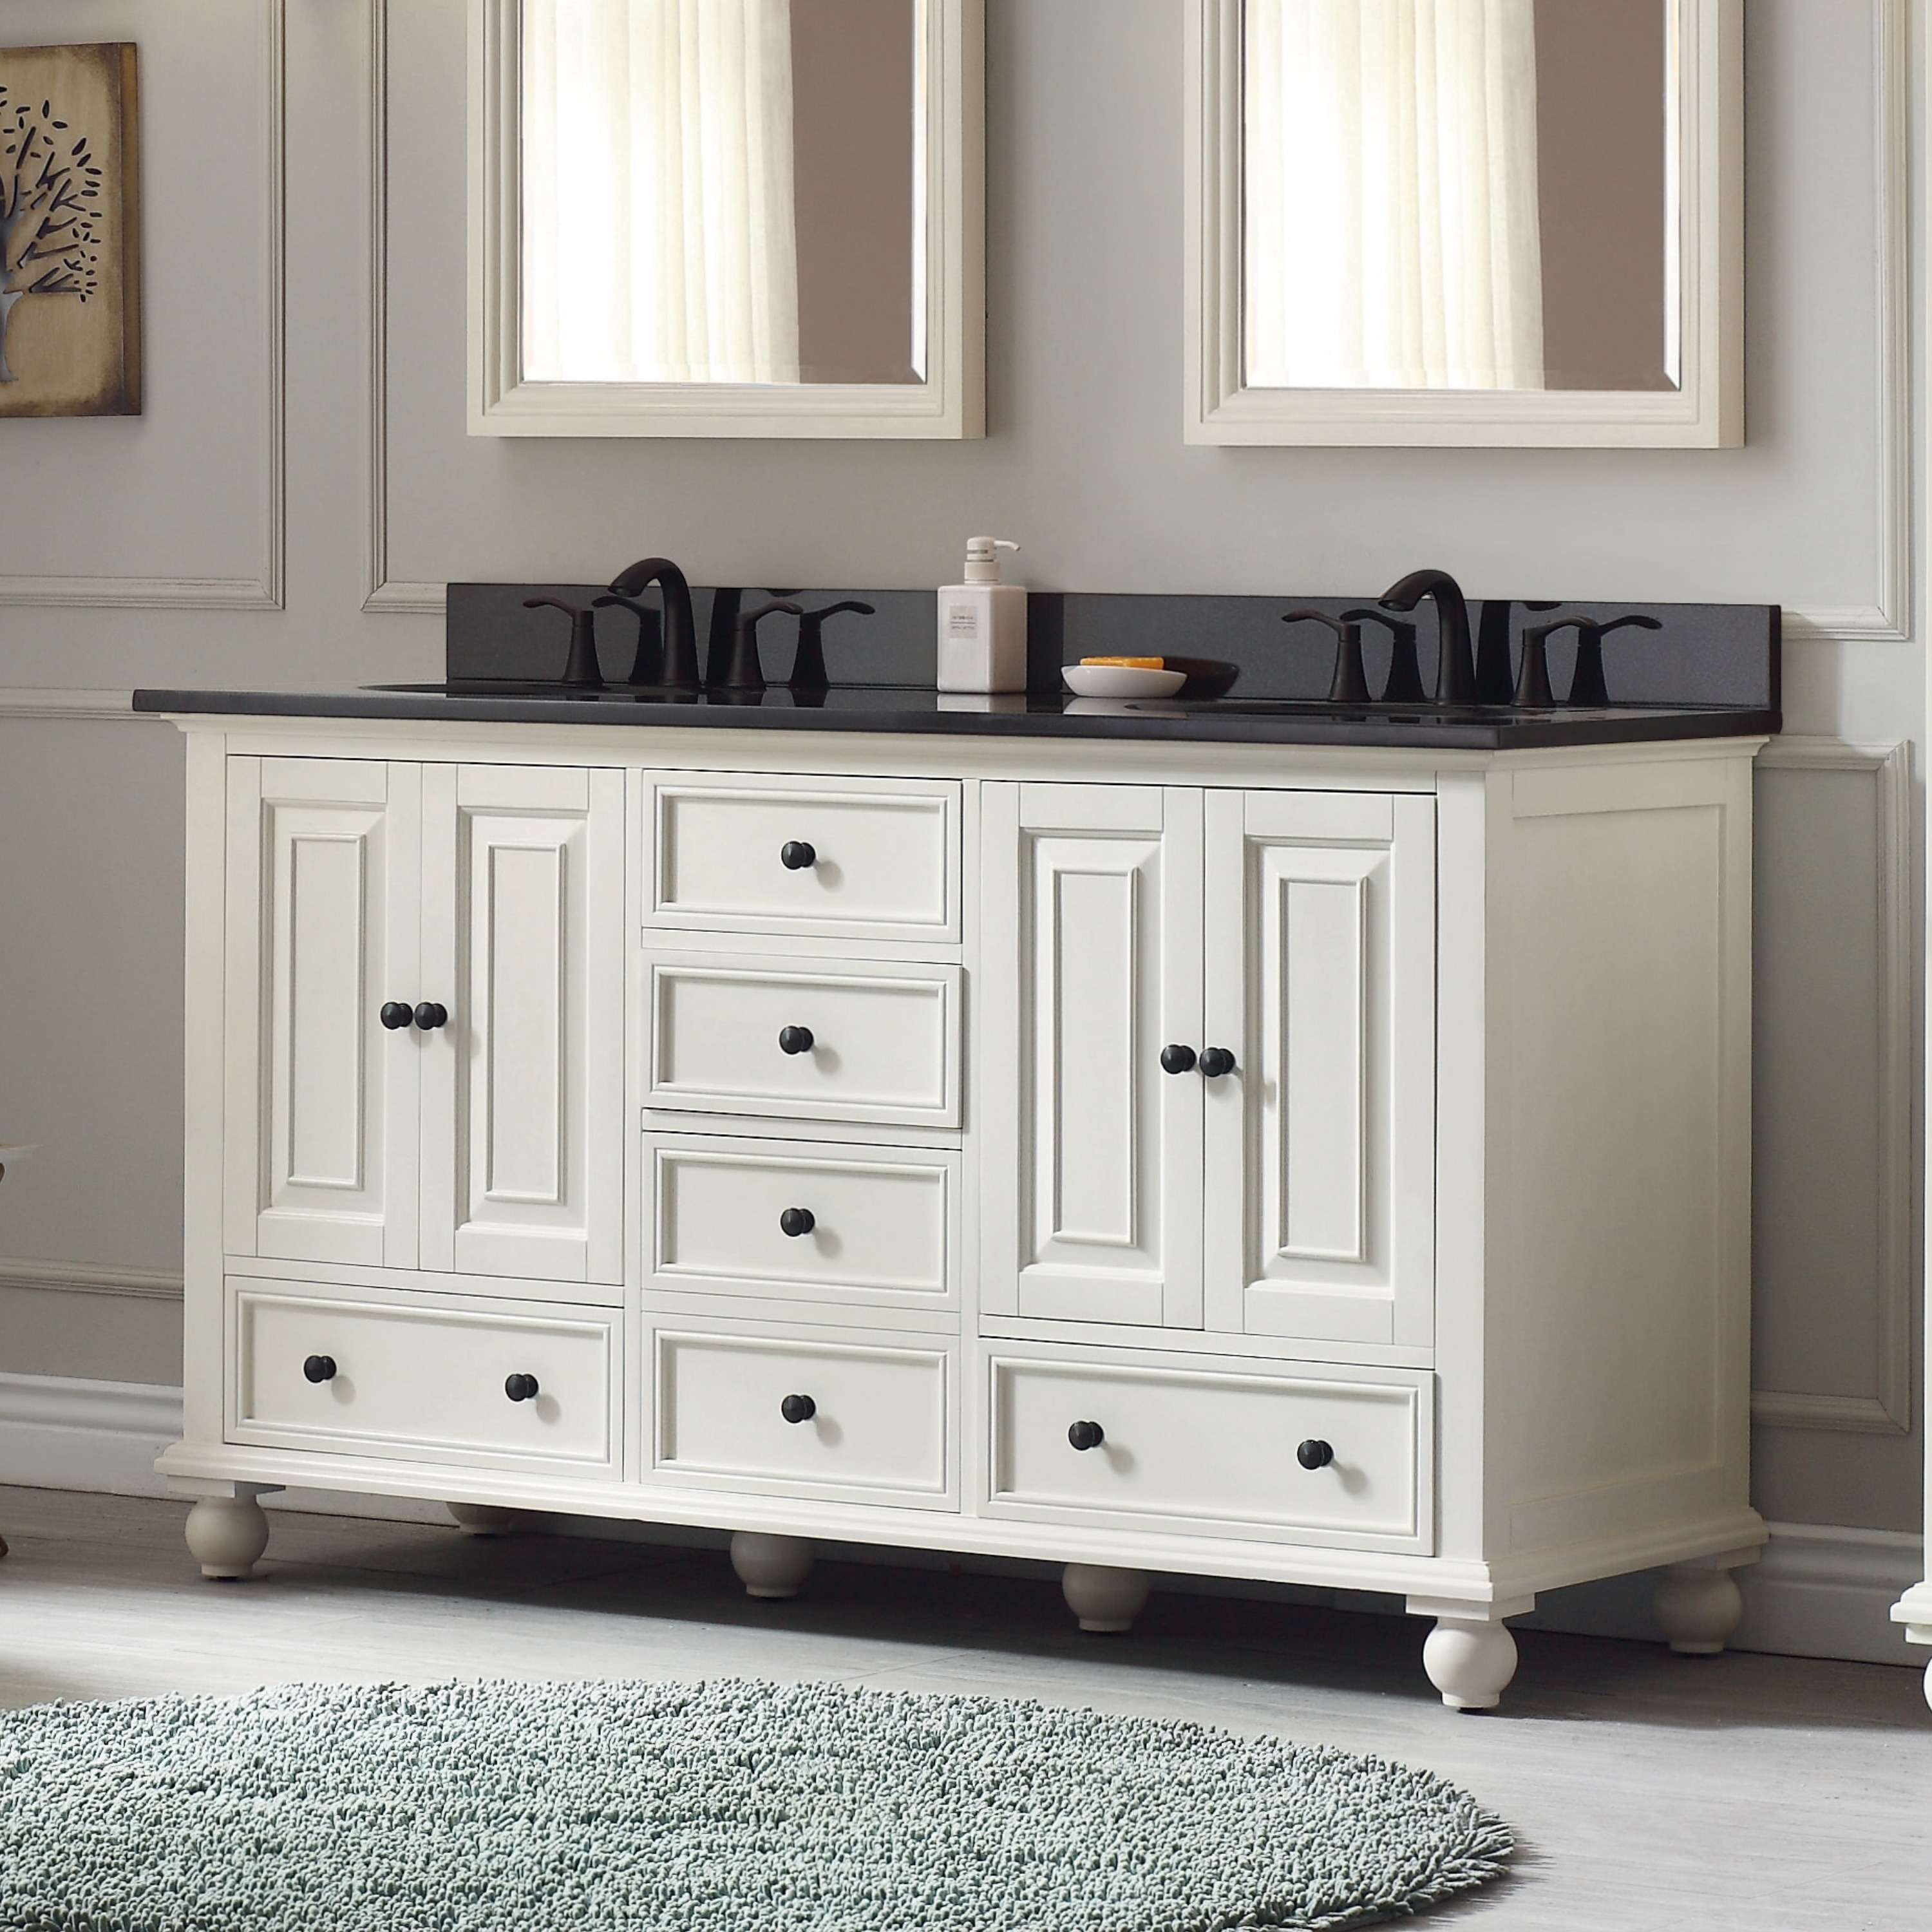 Avanity Thompson 61 Inch Double Sink Vanity Combo In French White Finish Overstock 10951080